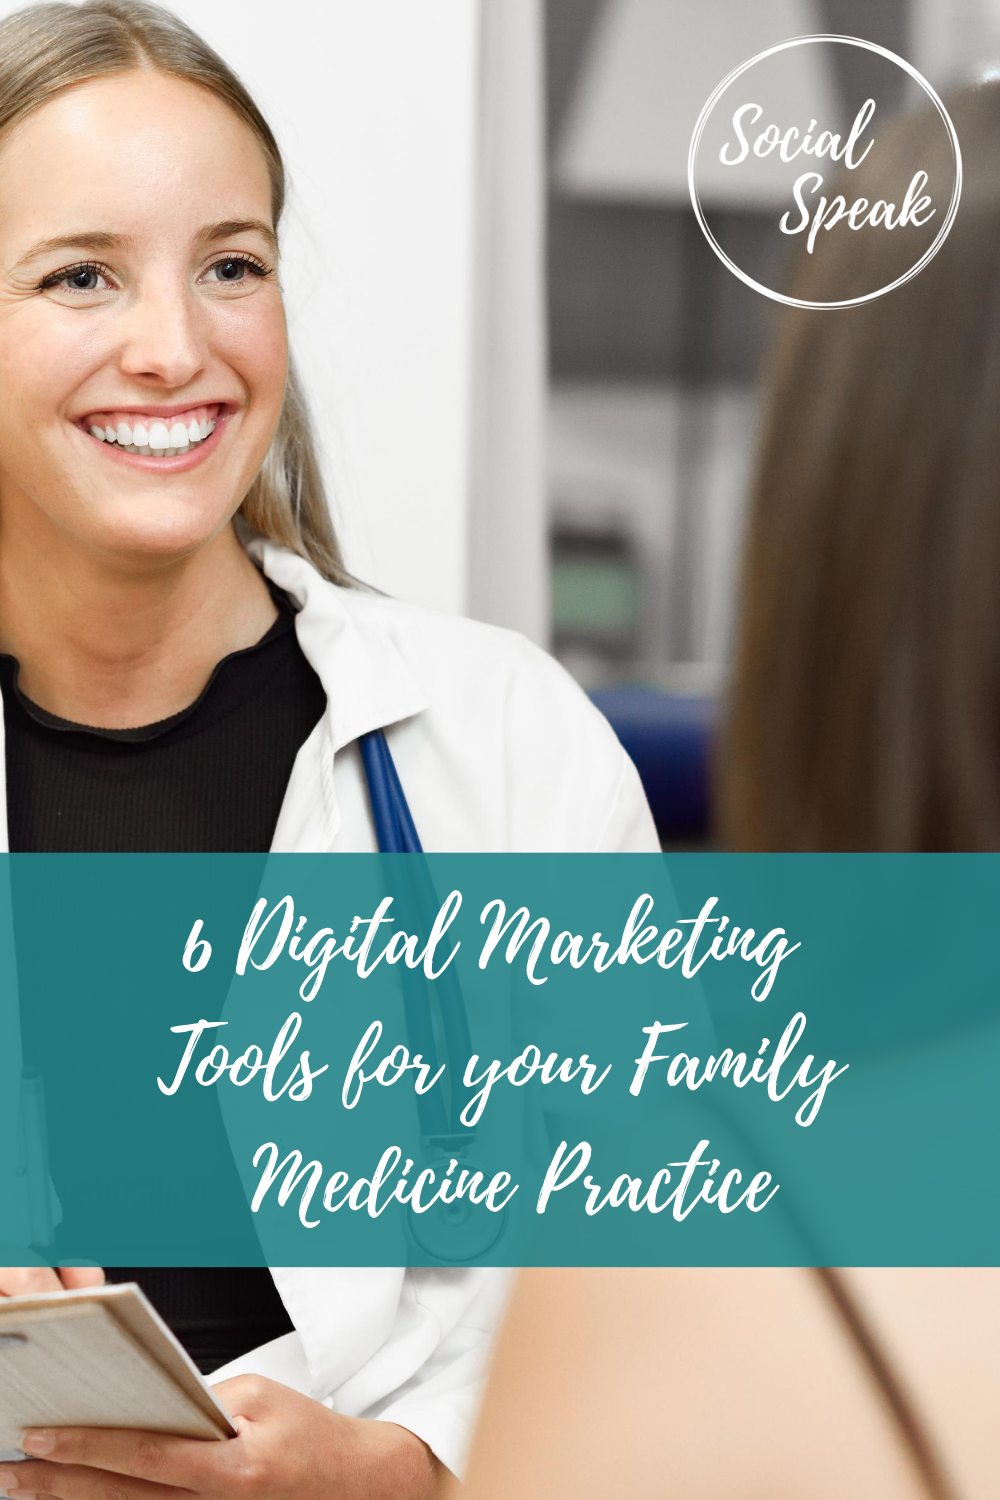 6 Digital Marketing Tools for your Family Medicine Practice